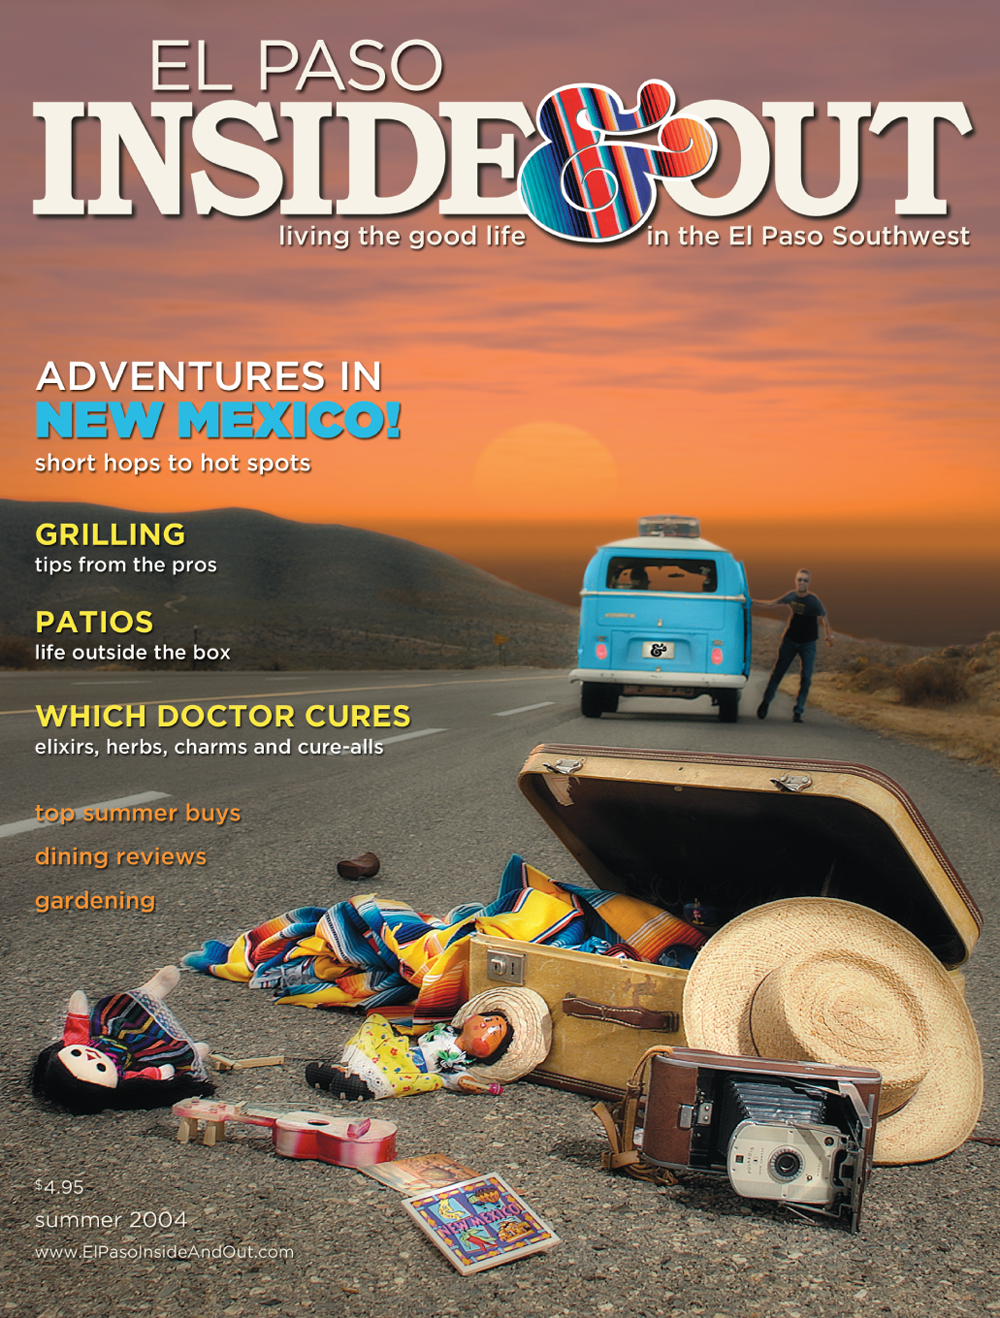 "Inside & Out was the brainchild of my client, publisher Don Baumgardt.  He wanted to produce a great local flavor magazine with wonderful and unique content.  We produced five issues before it became too expensive to produce...it was a choice between quality content or fluff that sells ad space, like ""Best Of Doctors, Lawyers, Real Estate Agents"" pseudo-editorial sections.  It was an idealistic venture that our 3-person team thoroughly enjoyed.  (Don Baumgardt-publisher, Pam Murray-editor, Jud Burgess-designer)"